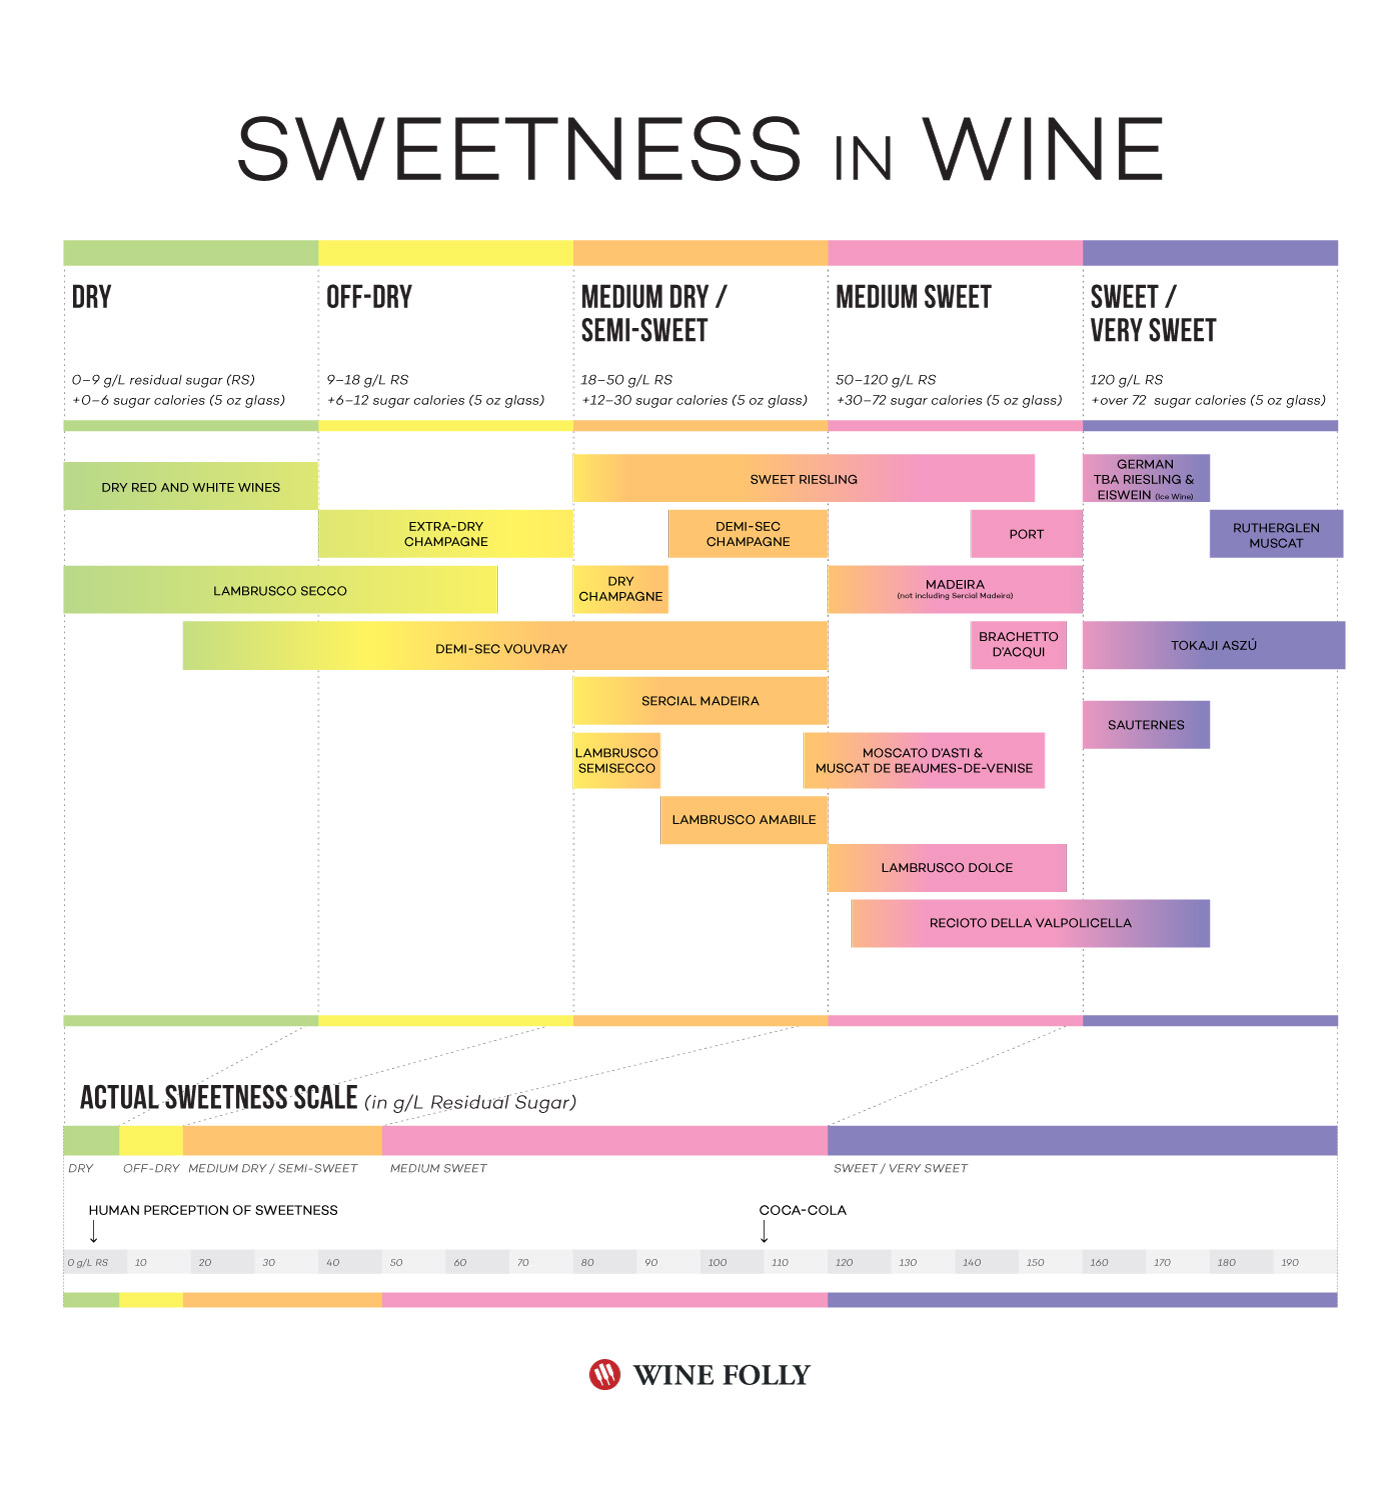 Sweetness in Wine Chart by Wine Folly